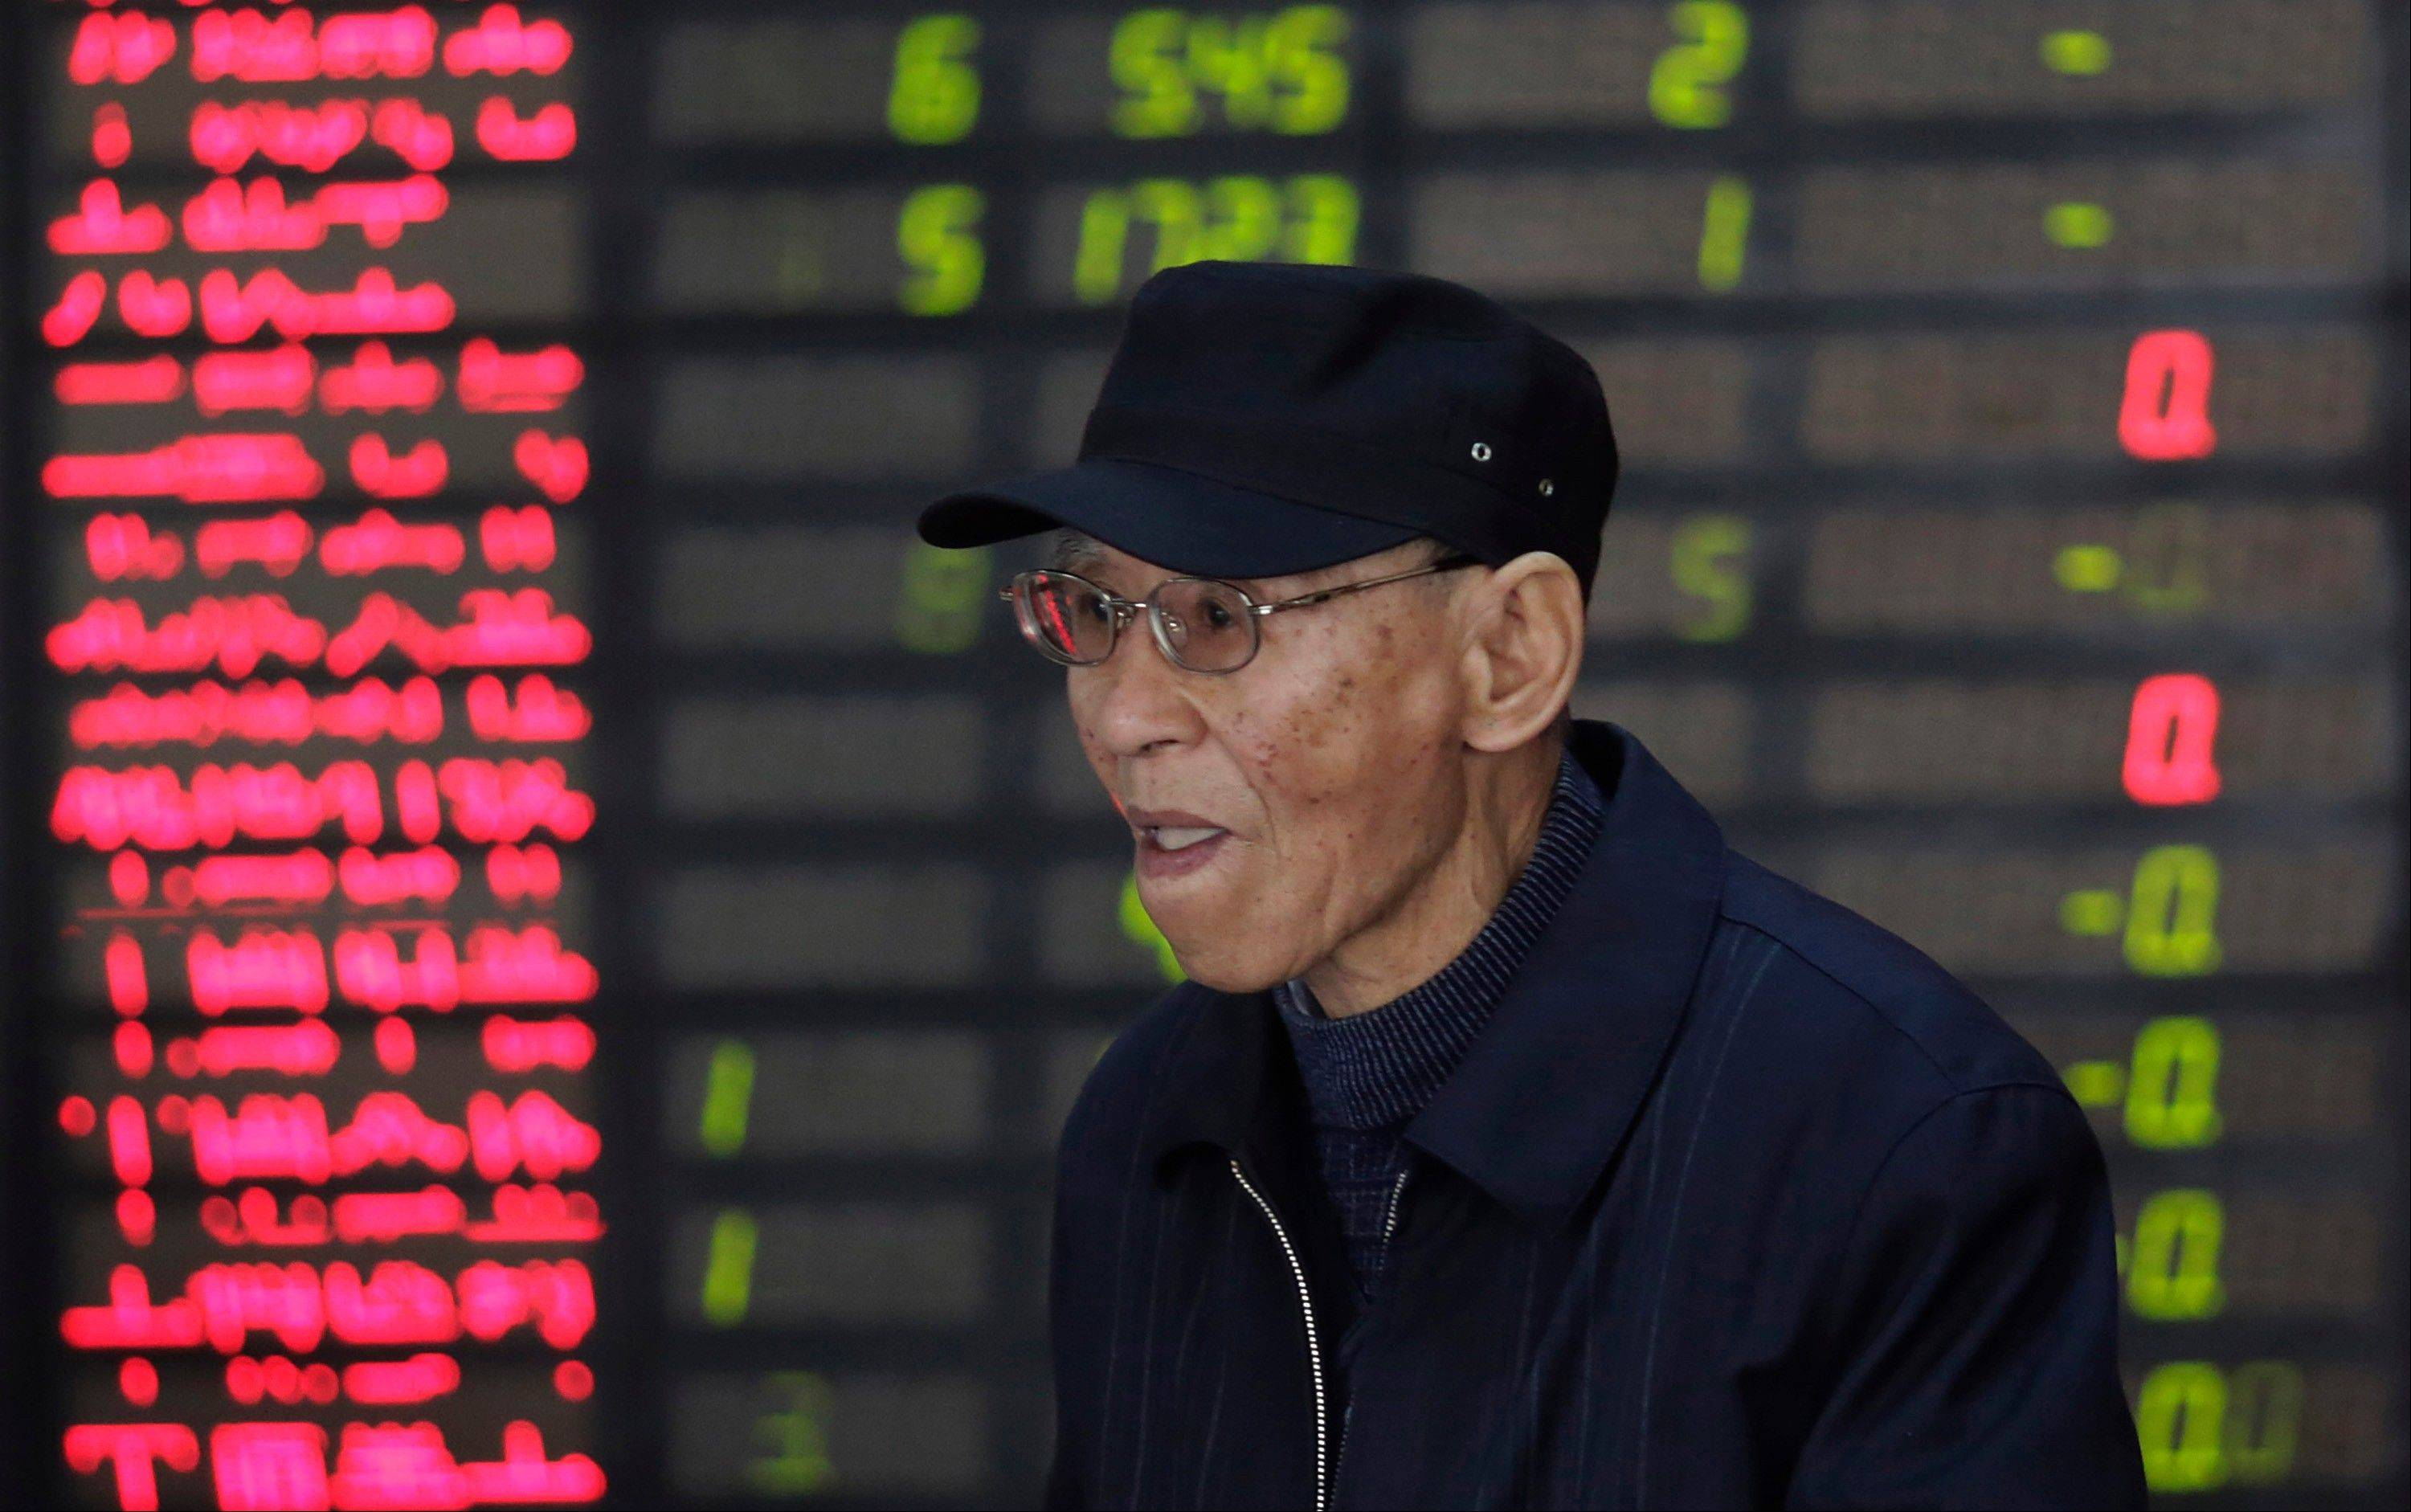 An investor looks at the stock price monitor at a private securities company in Shanghai, China Tuesday